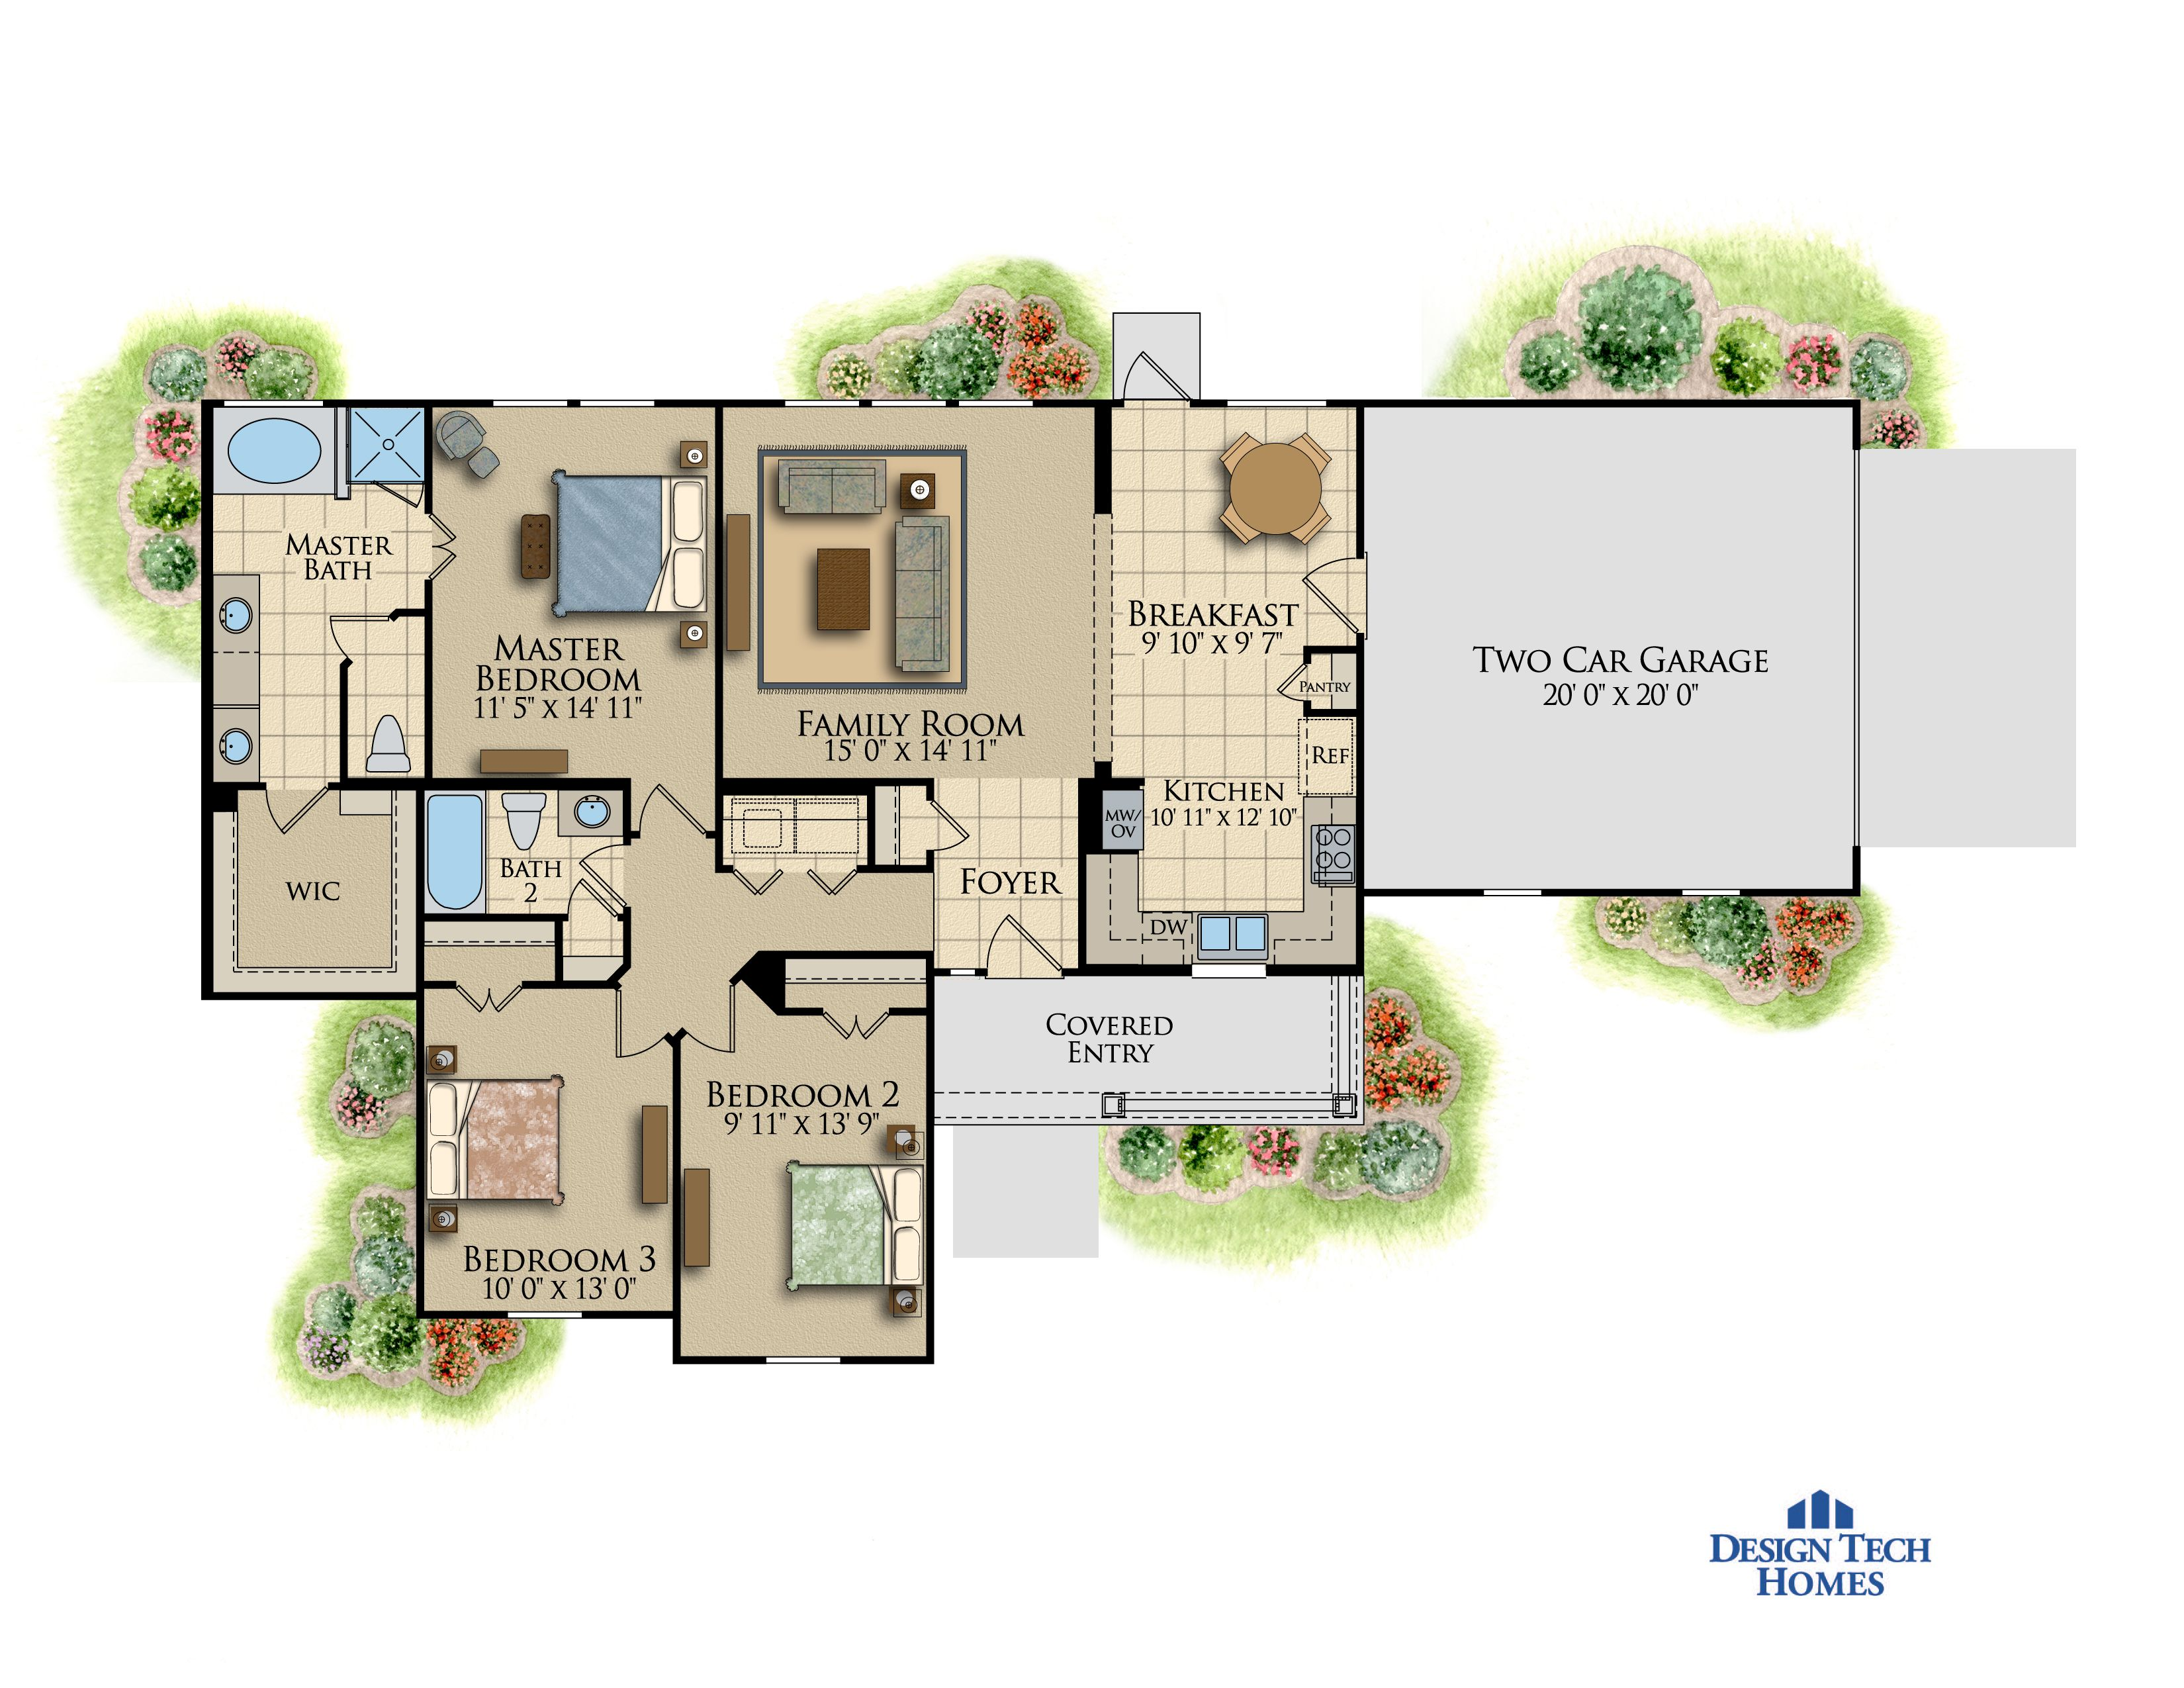 1,401 Sq Ft House Plan - 3 Bed 2 Bath, 1 Story - The Willowbend ...